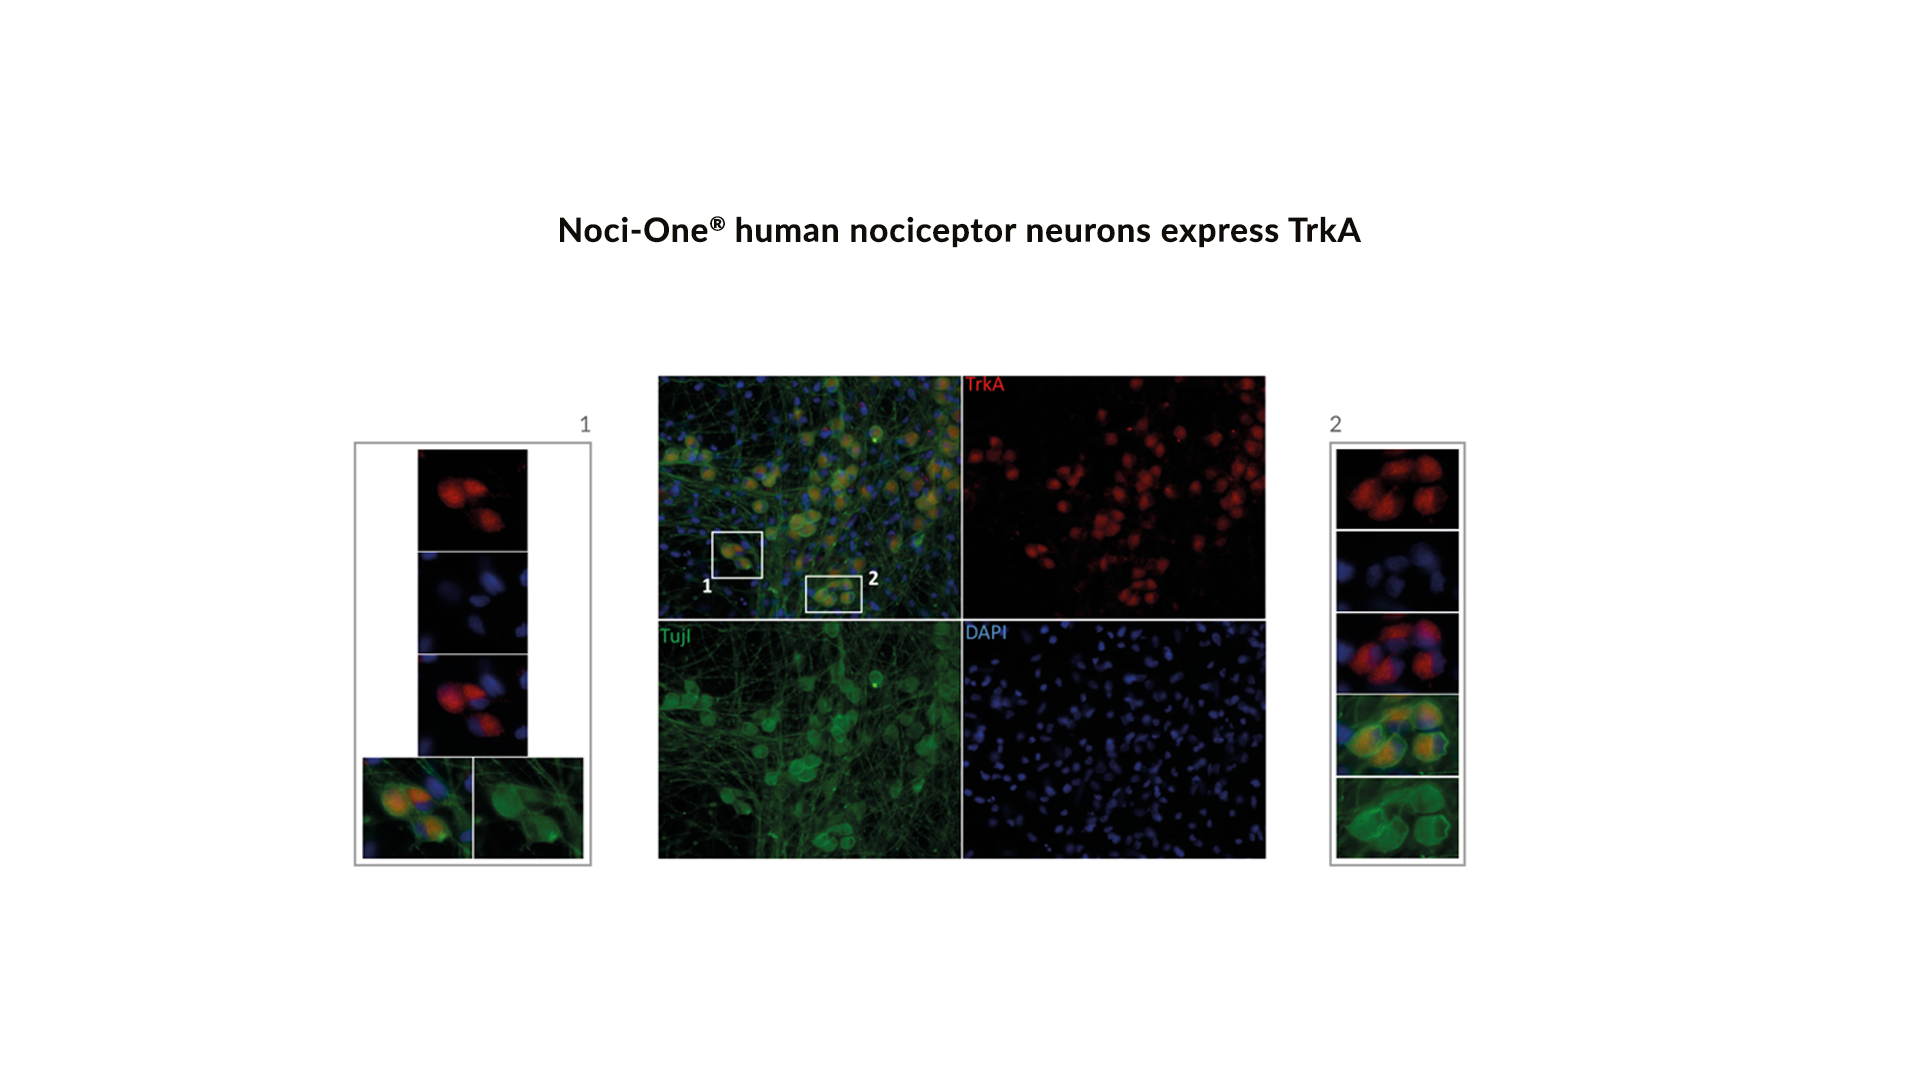 technical-validation-sheet-noci-one-human-cell-design-2020-12-figure-2